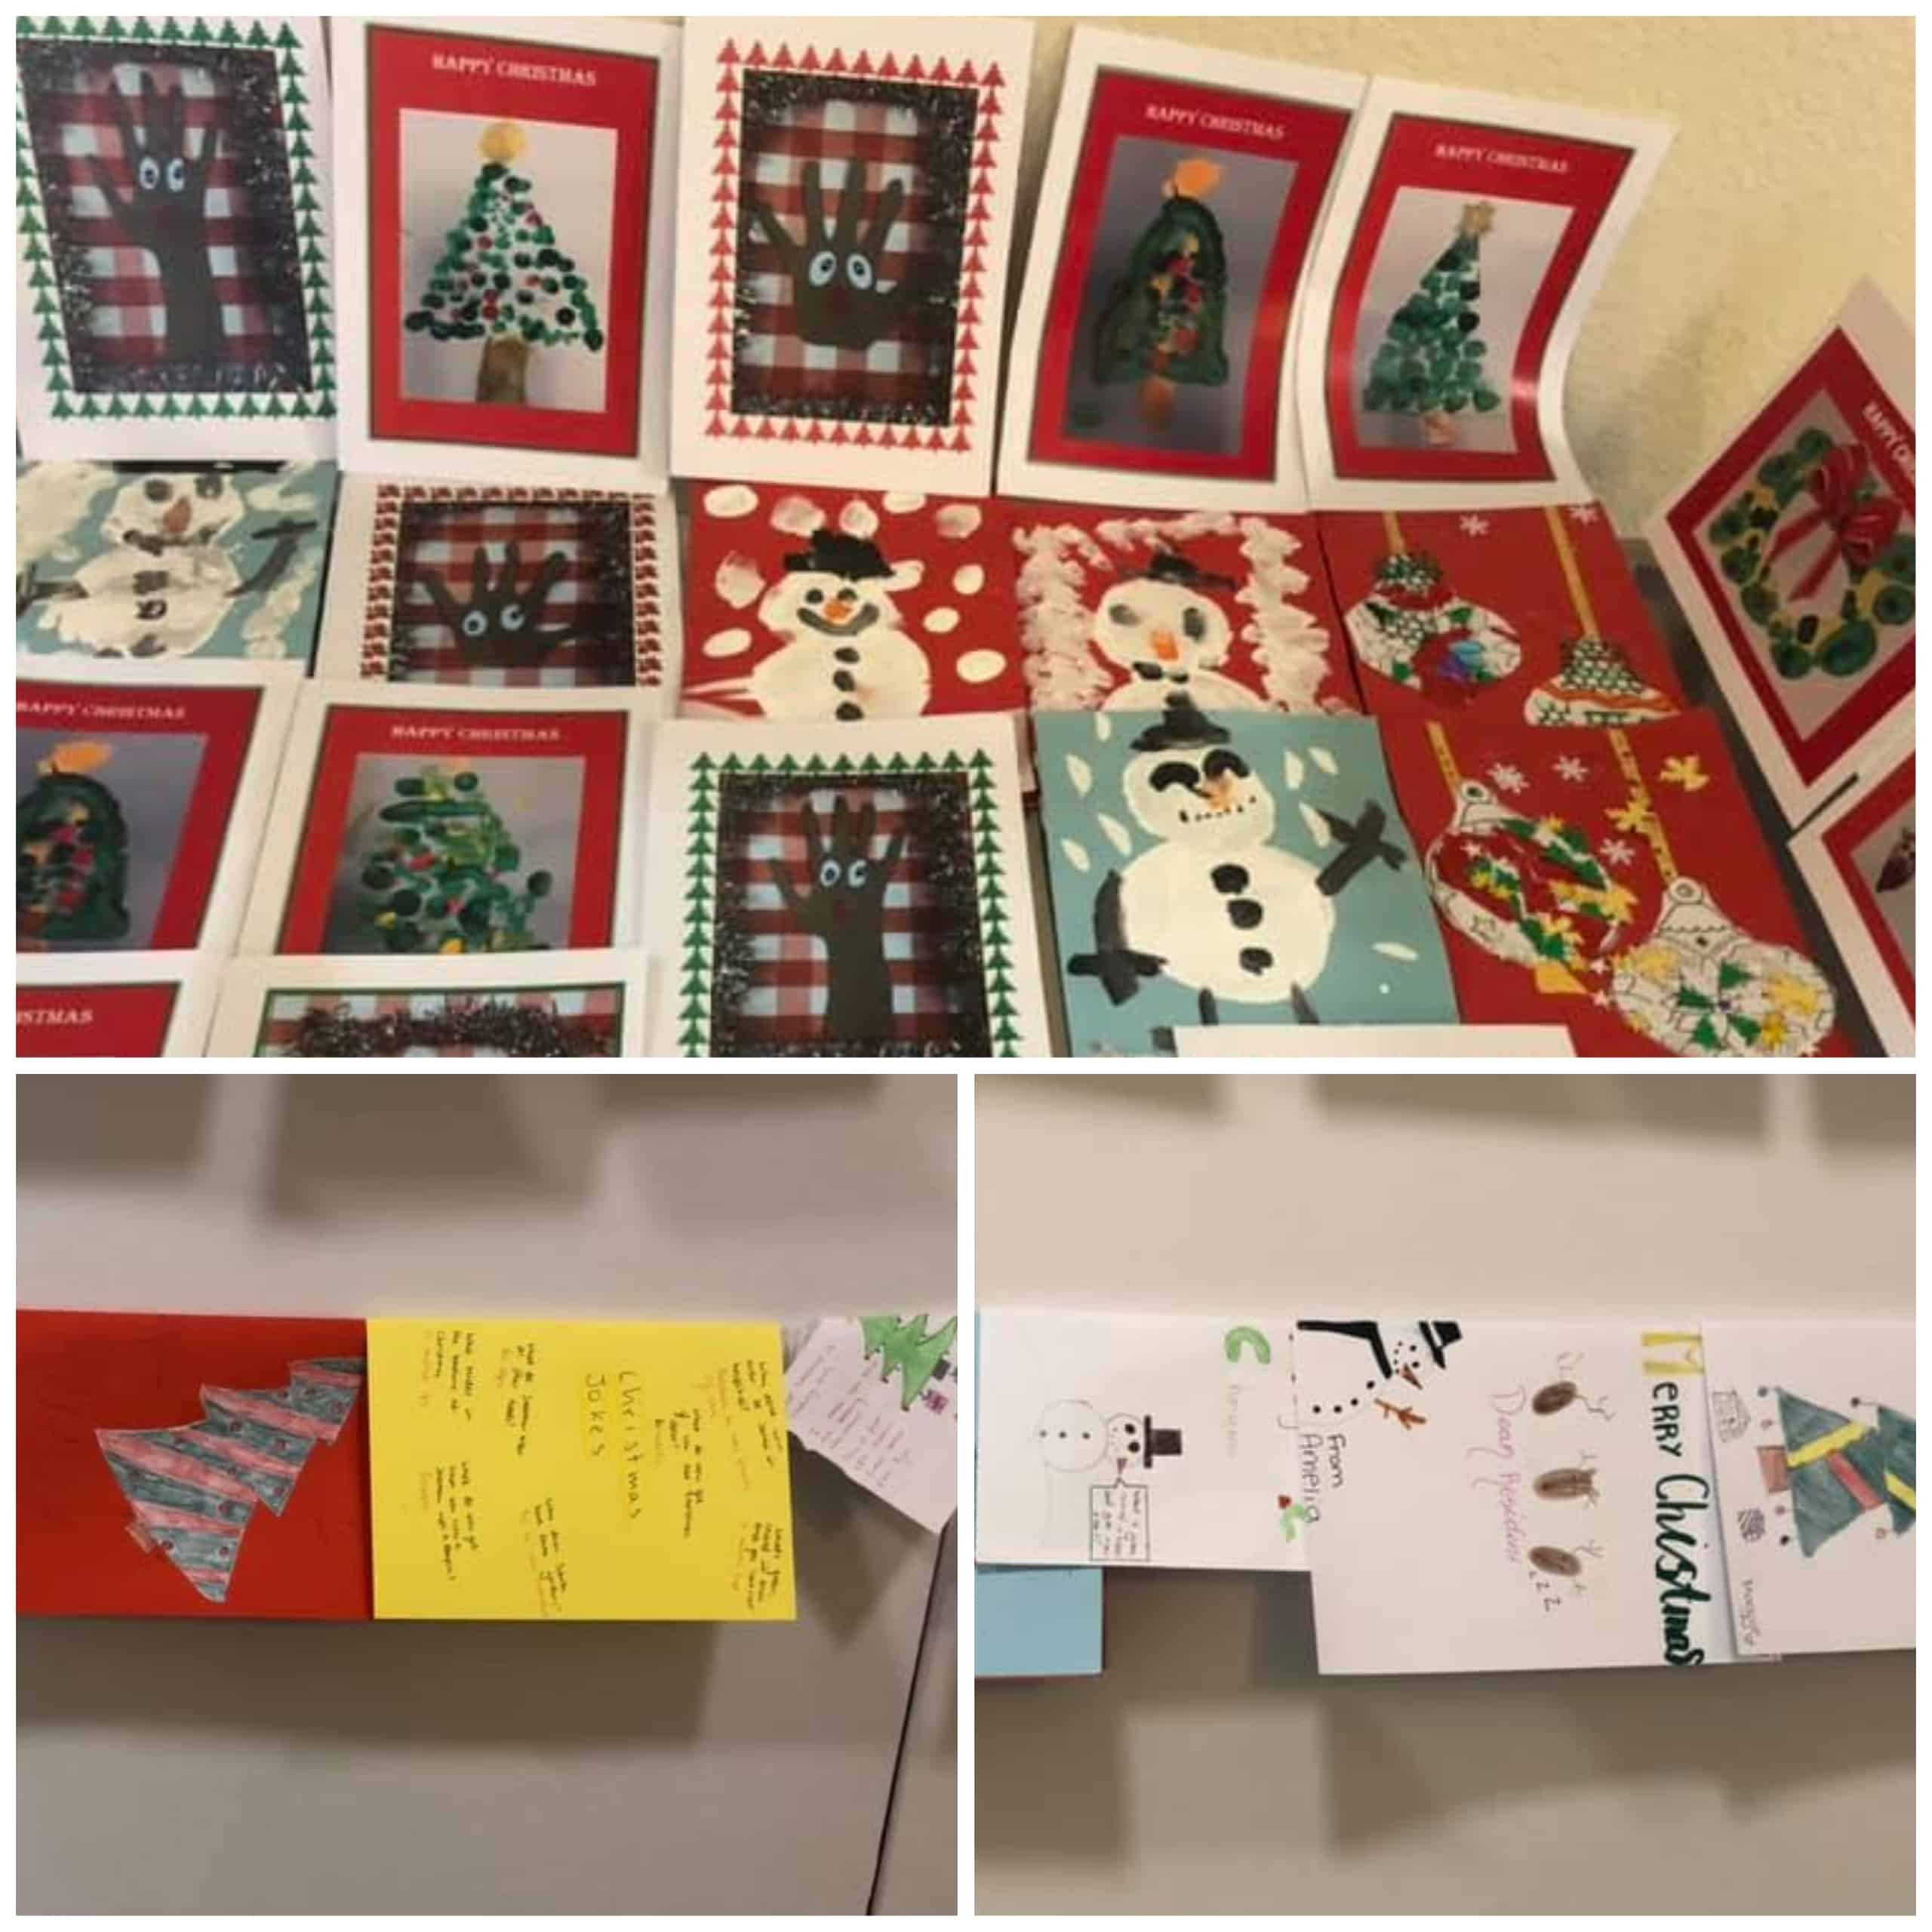 A selection of the hand decorated Christmas cards sent to Westerham Place Care Home residents by local school children.